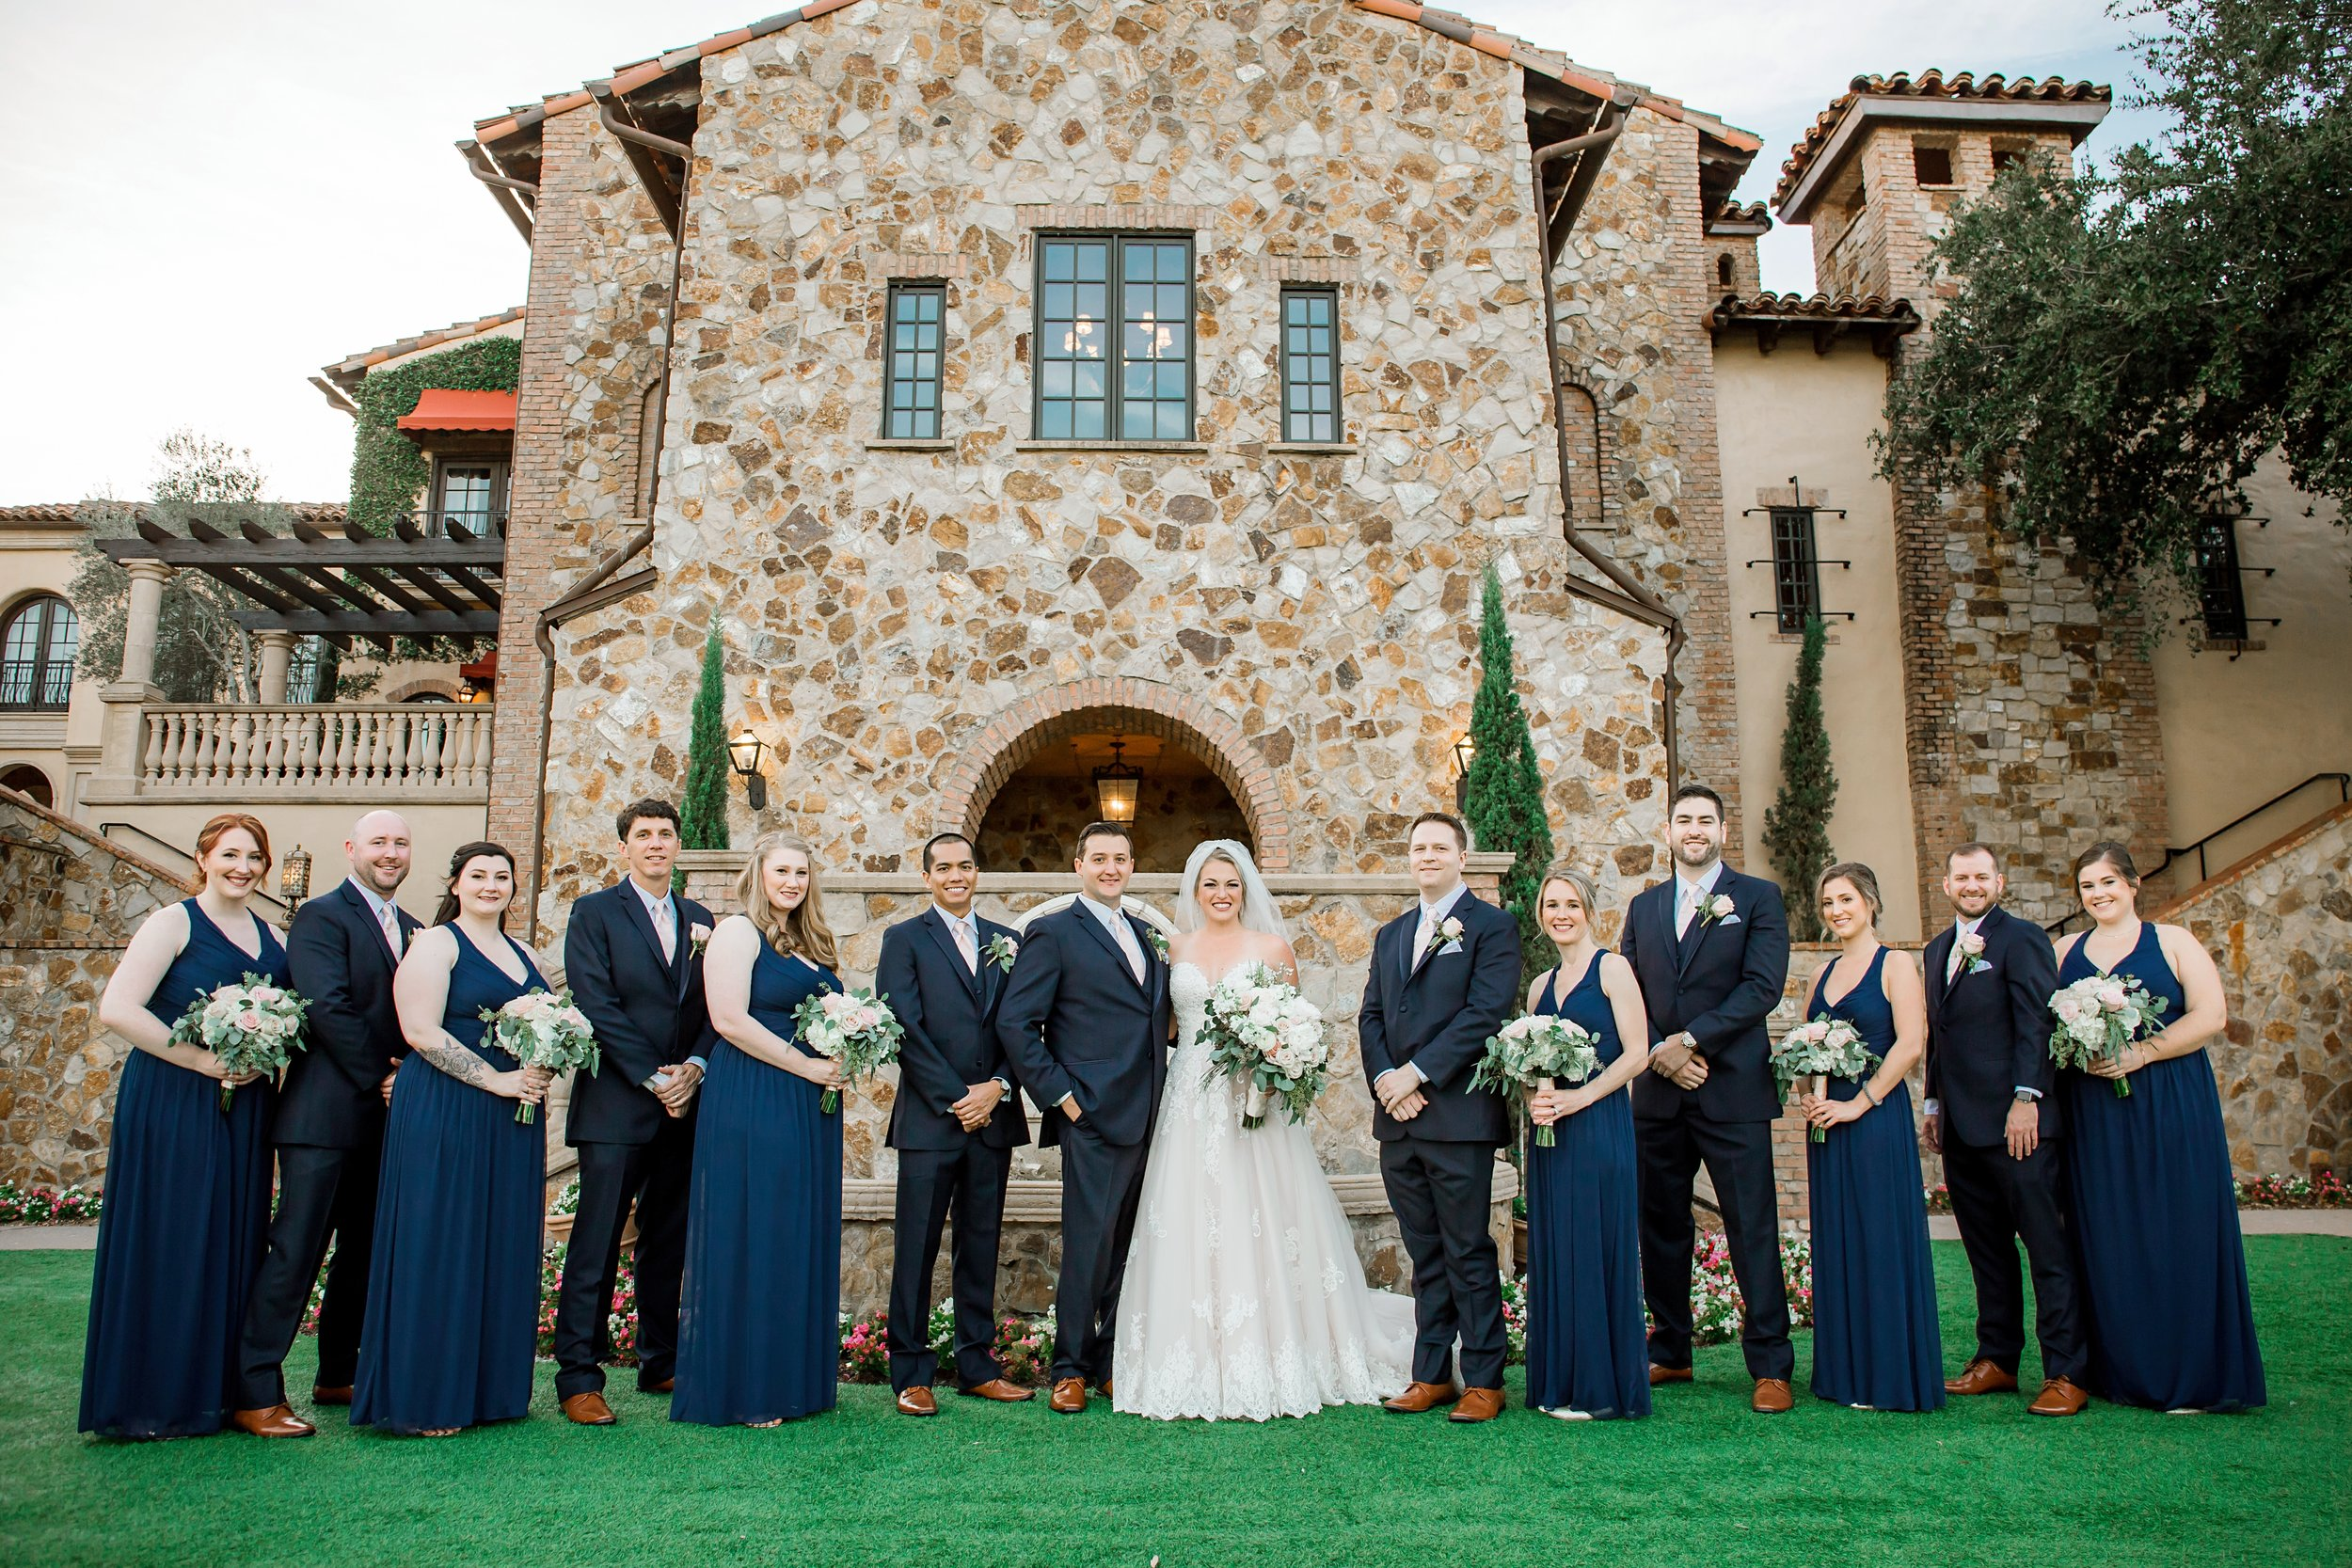 Orlando wedding venue bella collina.jpg